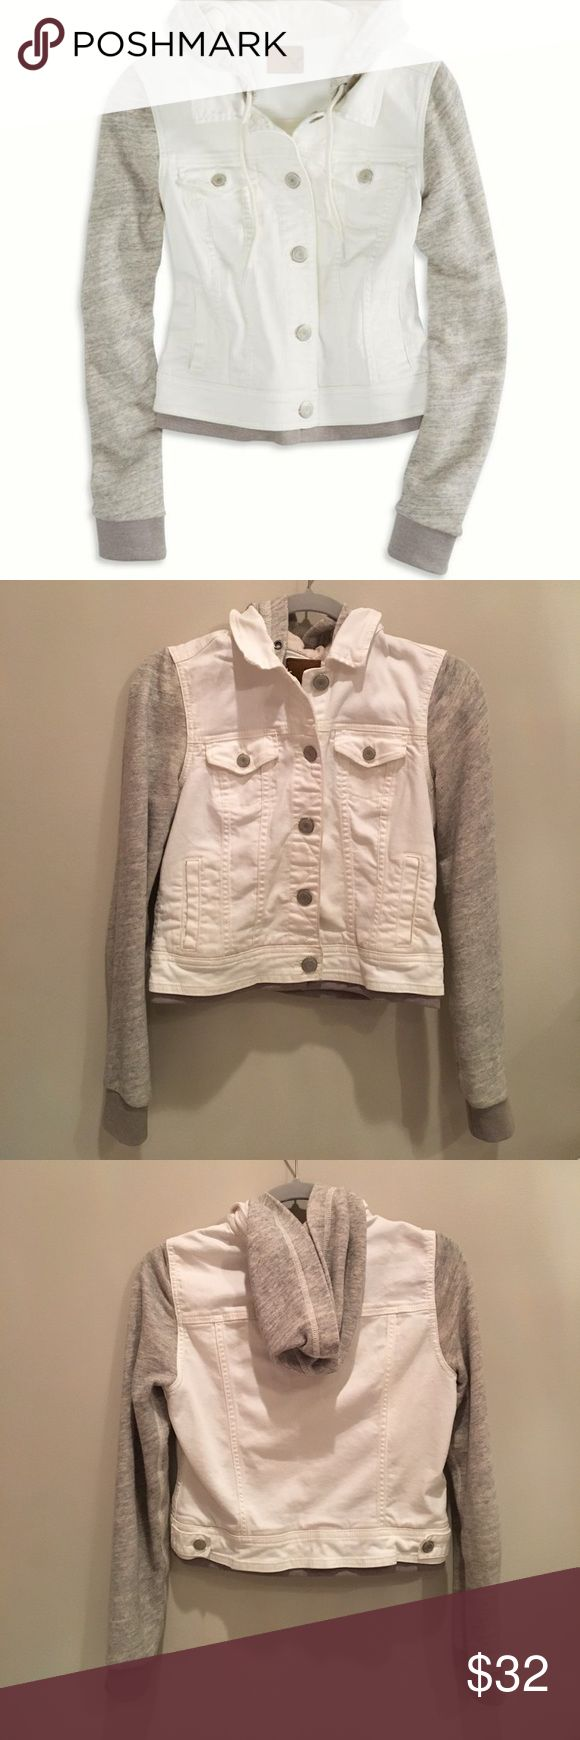 AEO Jean Jacket Hoodie This SUPER cute and comfortable Jean jacket is perfect for whenever. 100% cotton sweatshirt material sleeves and hood. Worn a small handful of times, no stains. Unfortunately, I grew out of it! American Eagle Outfitters Jackets & Coats Jean Jackets